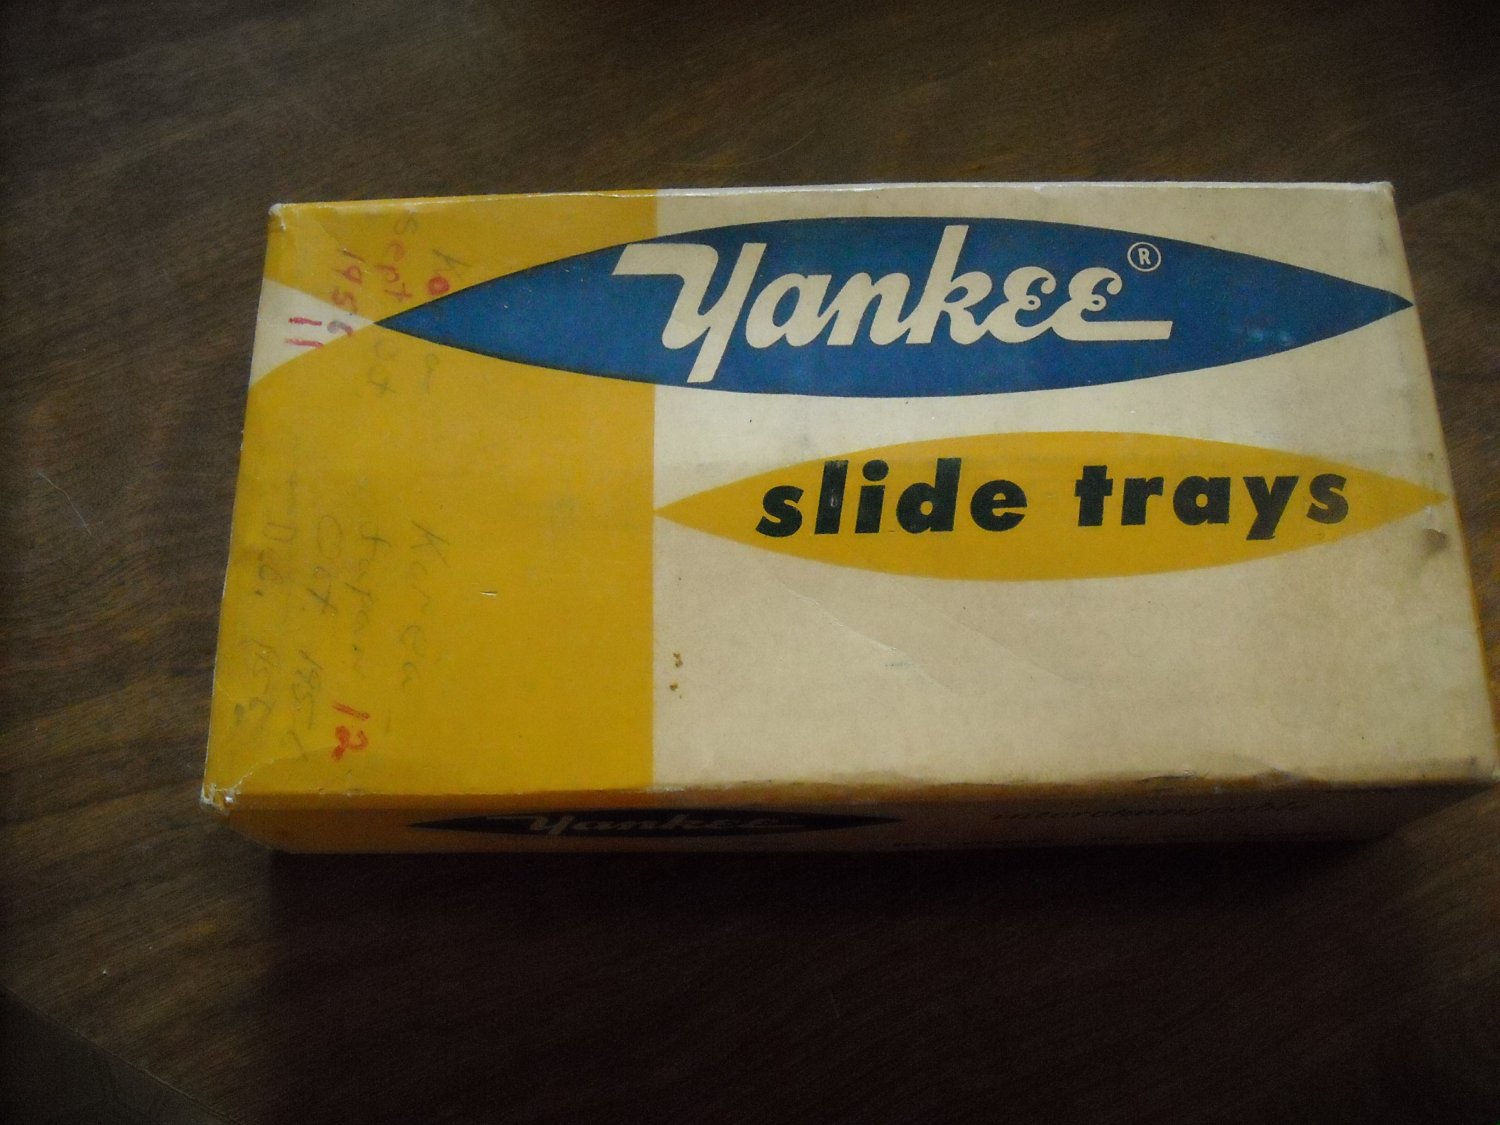 Yankee 2 interchangeable Slide Trays for Viewflex and TDC Changers (BLB1)